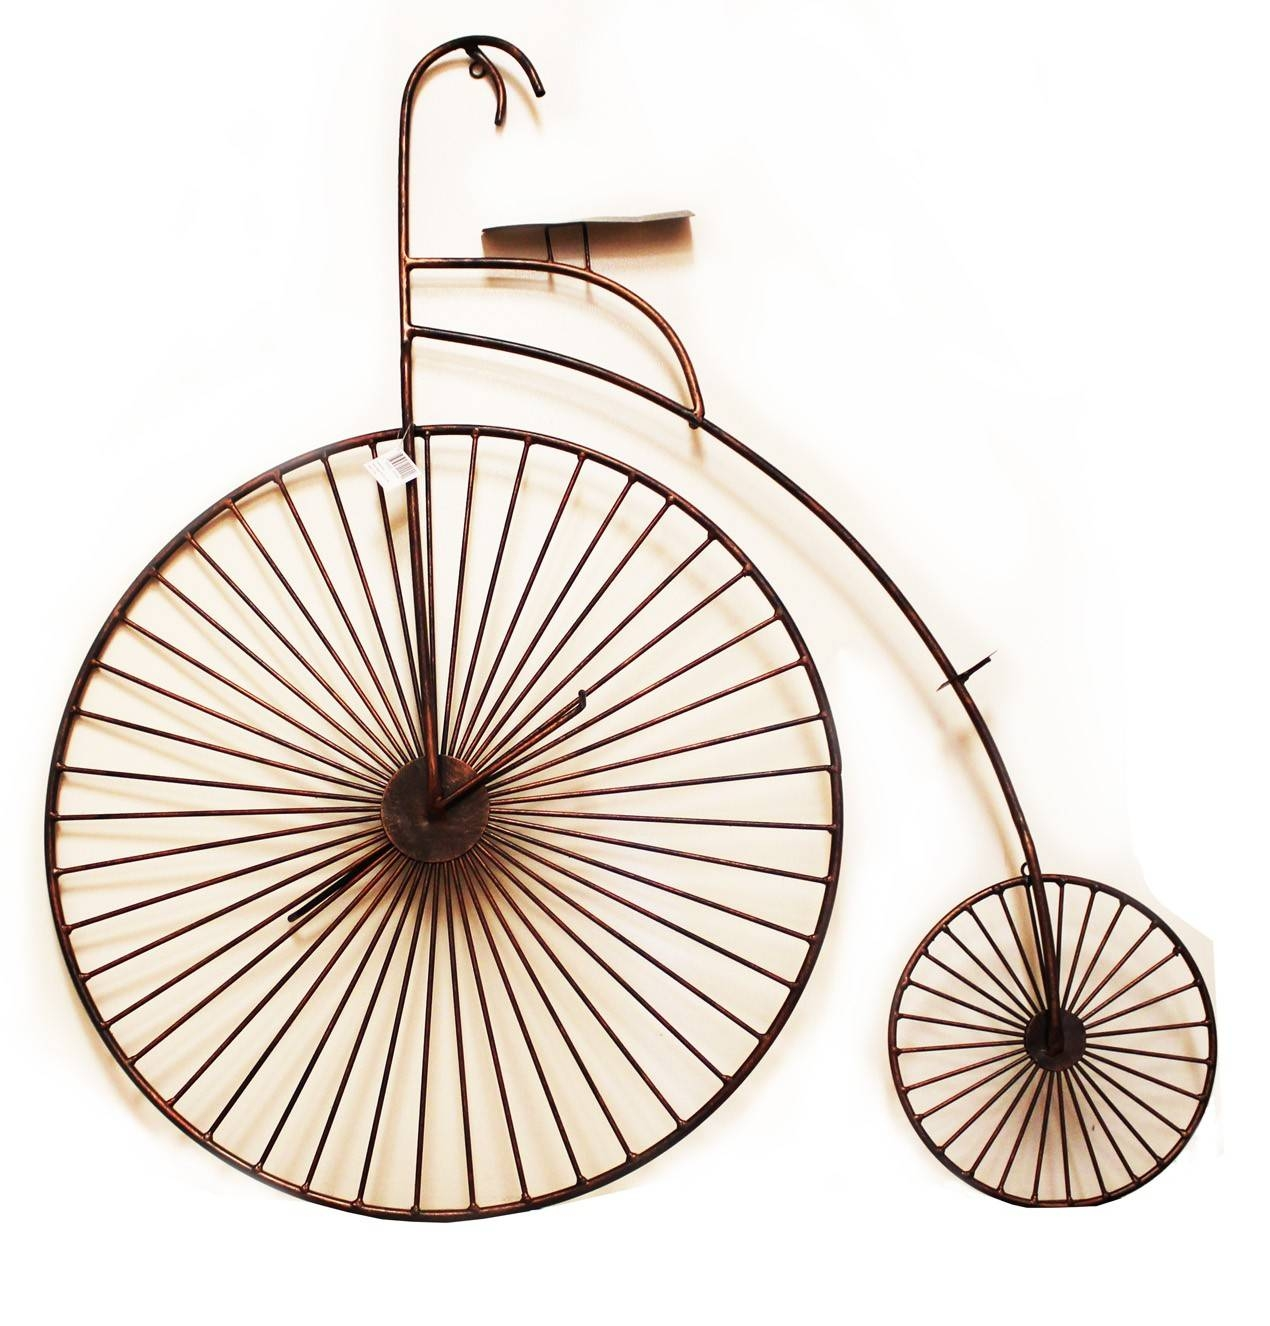 3D Copper Tone Bicycle Wall Art | Unique Metal Wall Art | Wall Decor Pertaining To Most Current Metal Bicycle Art (Gallery 4 of 20)